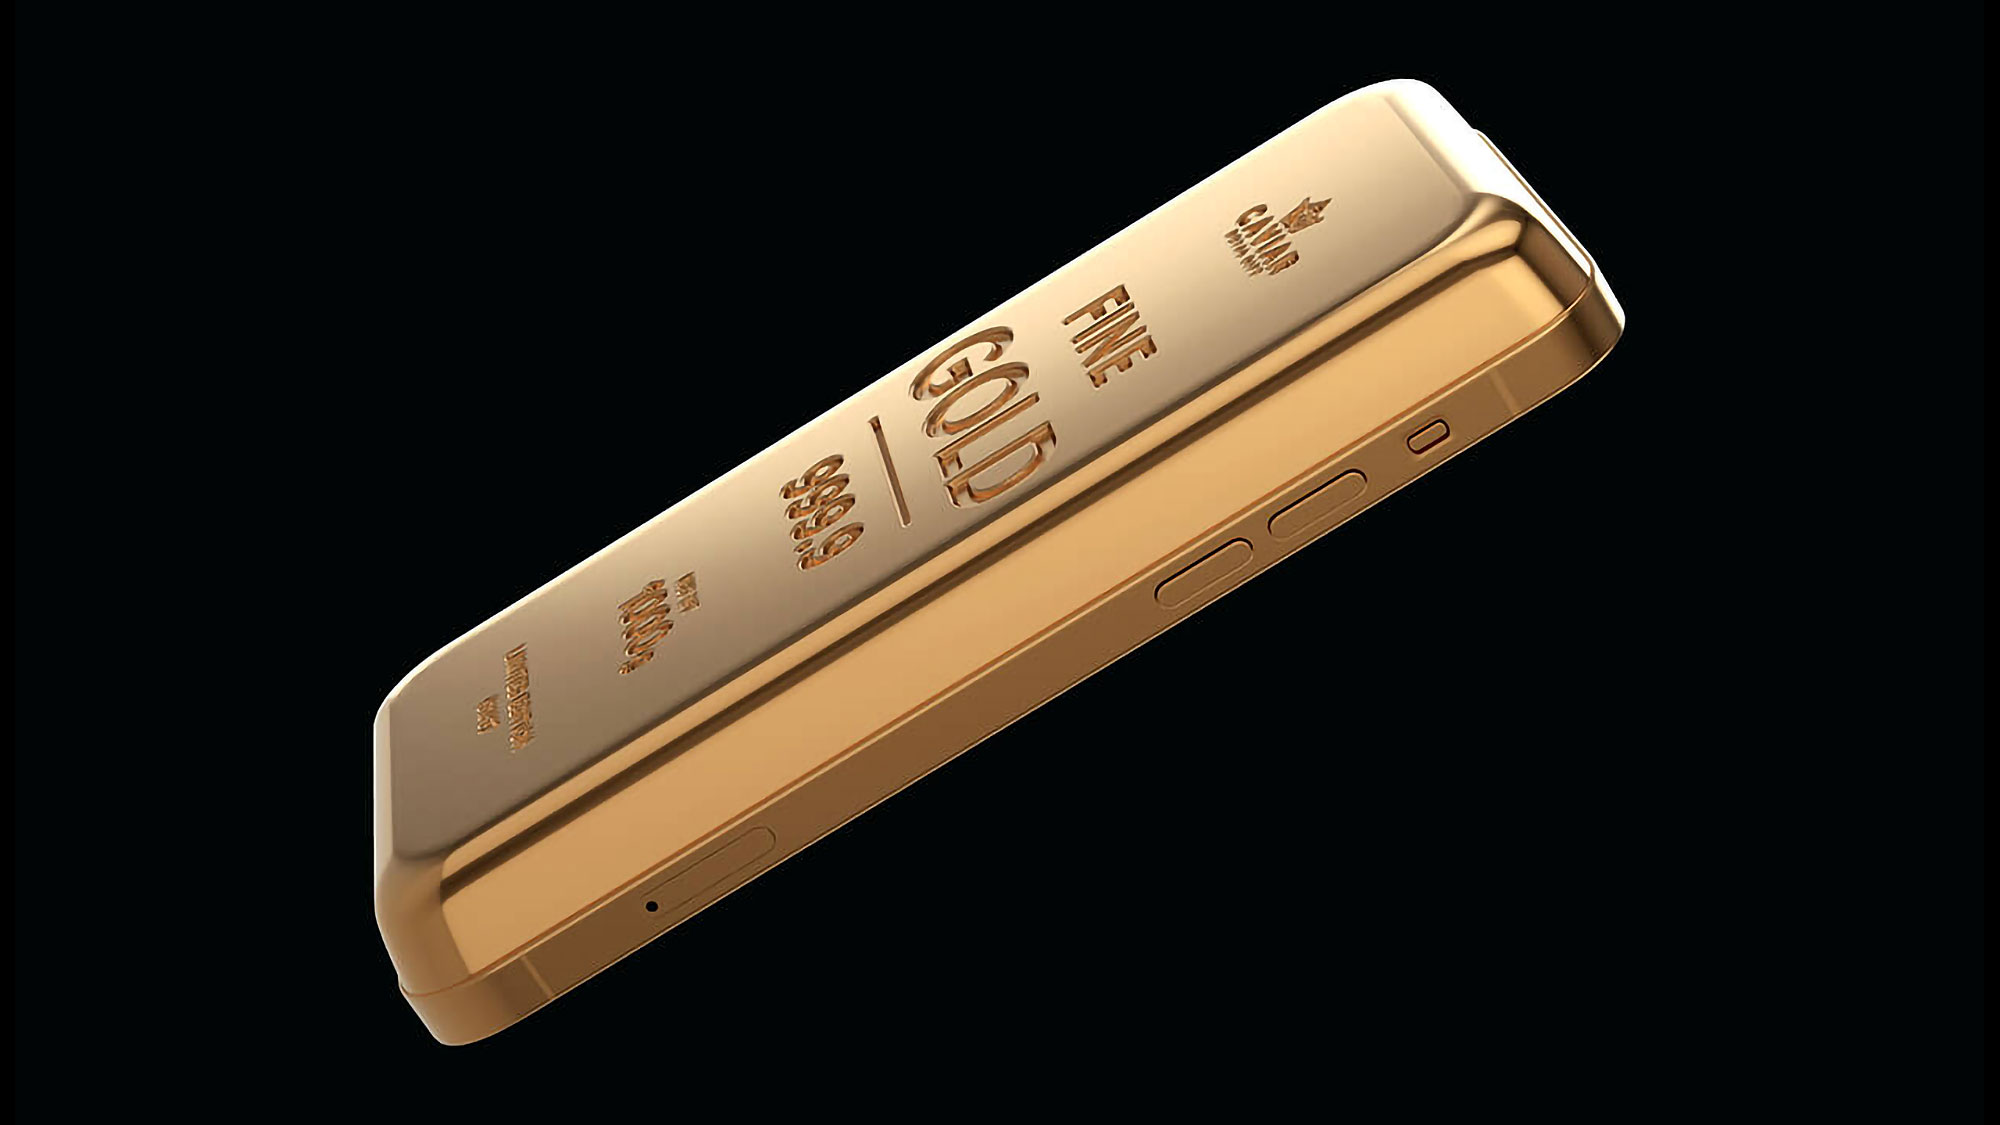 Caviar Goldphone Solid Gold Bar With Phone Function